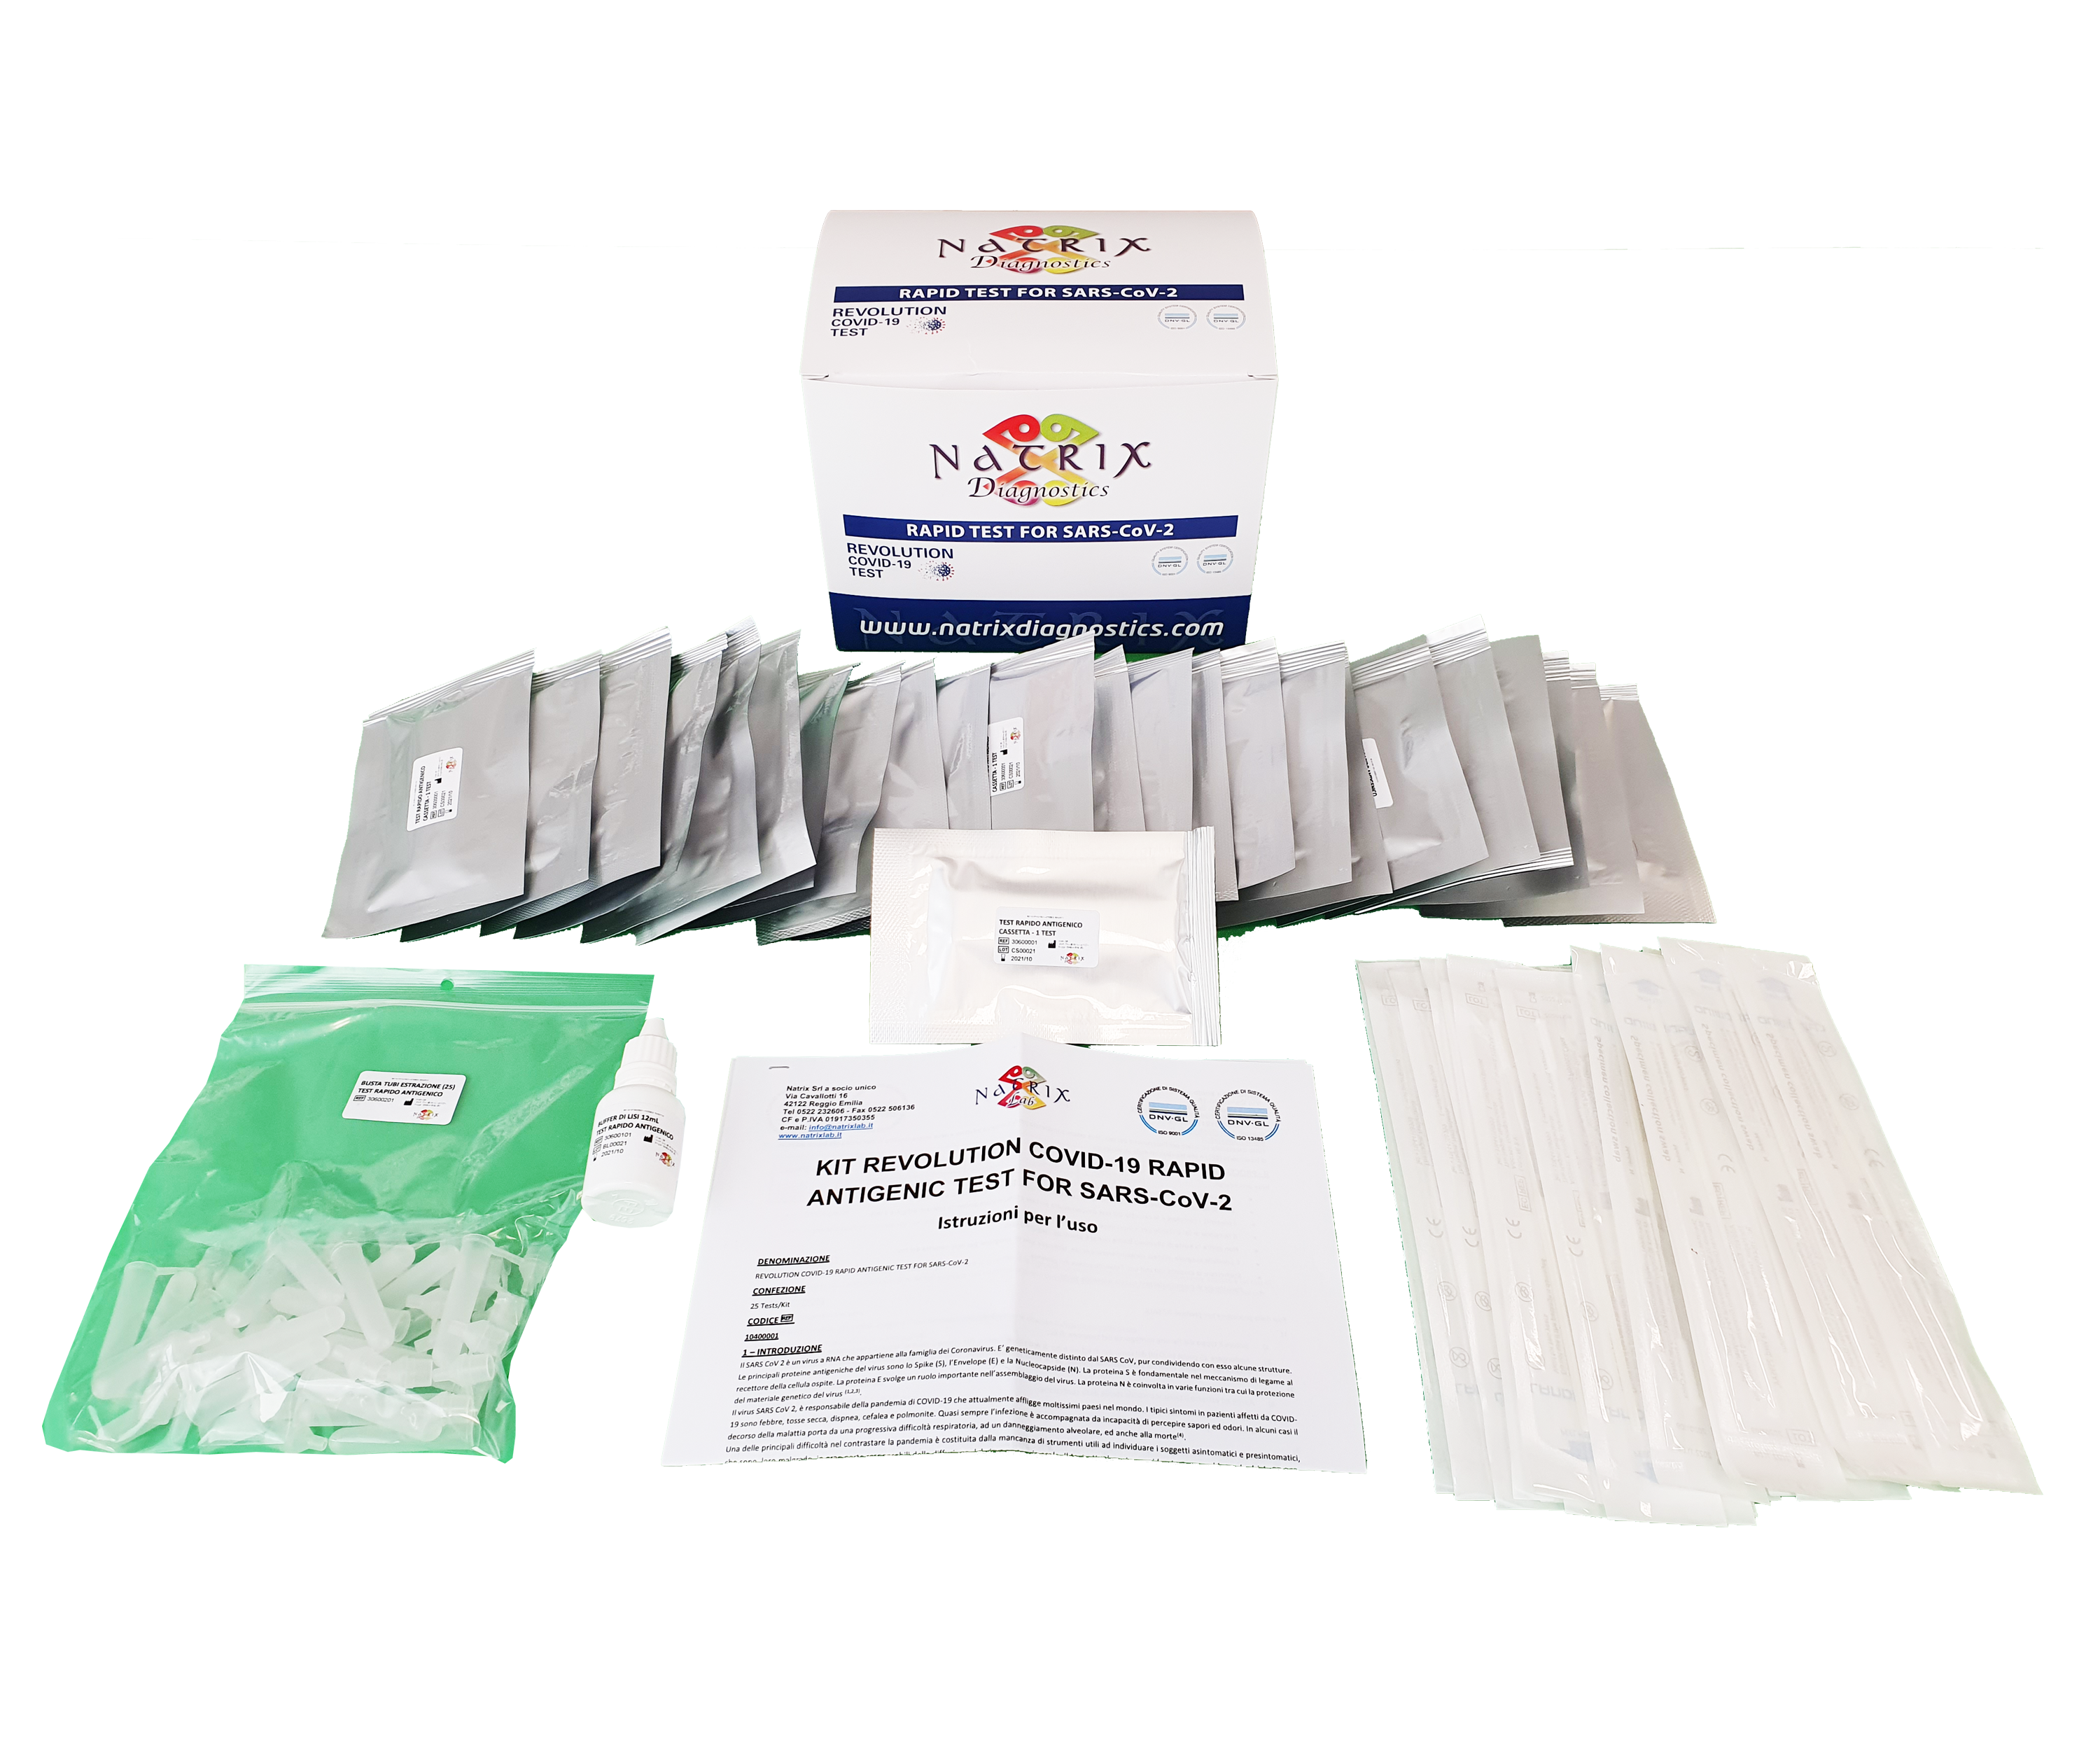 image components rapid antigenic test for sars-cov-2